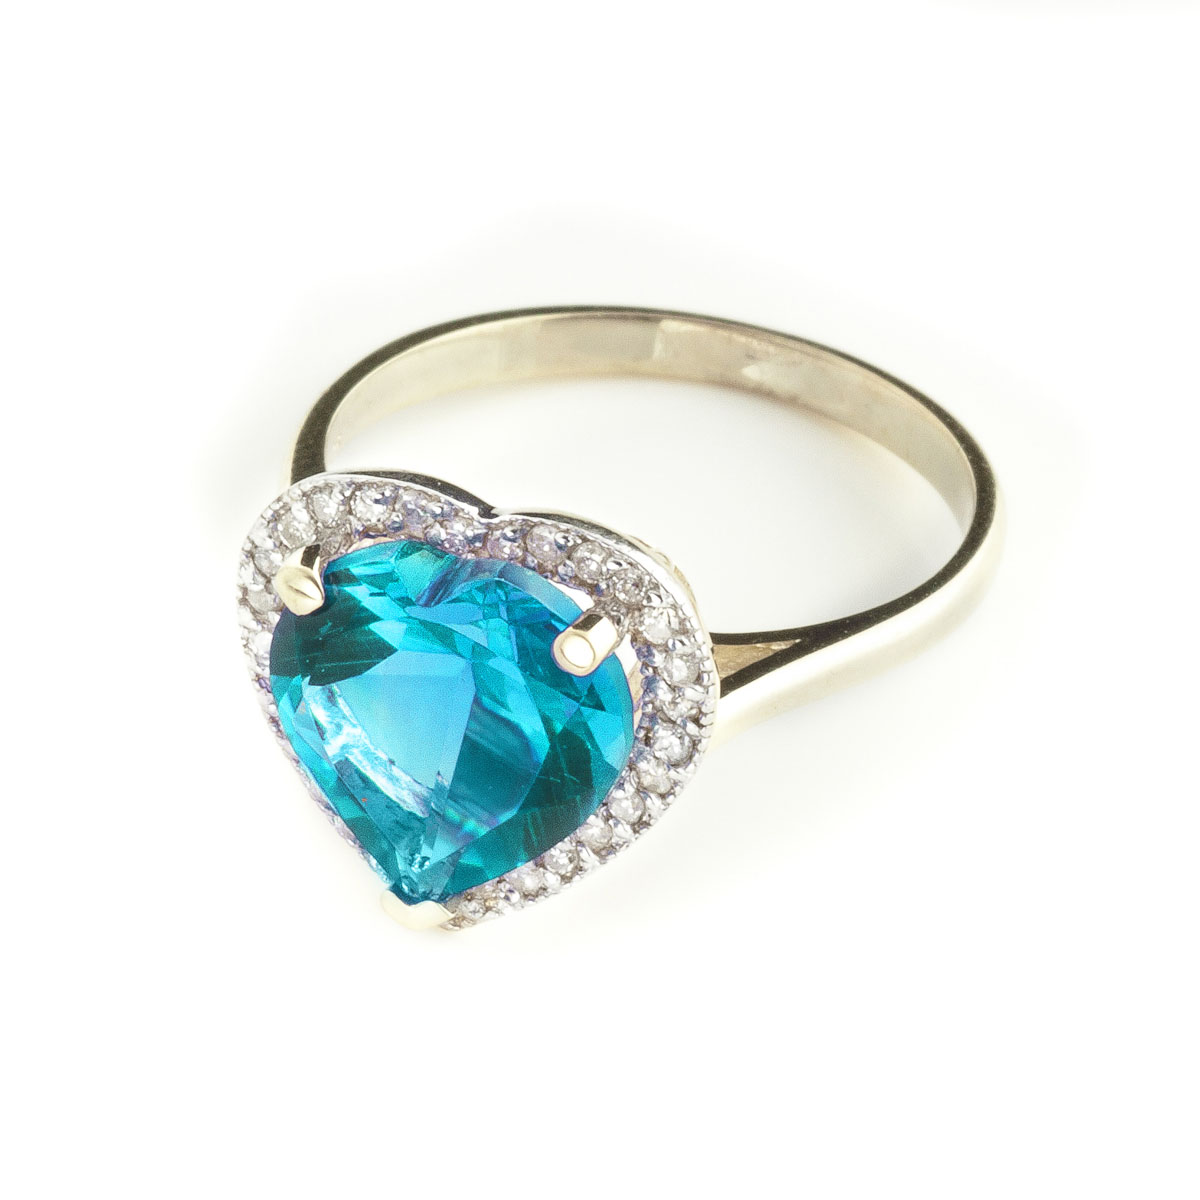 Blue Topaz Halo Ring 6.44 ctw in 9ct Gold